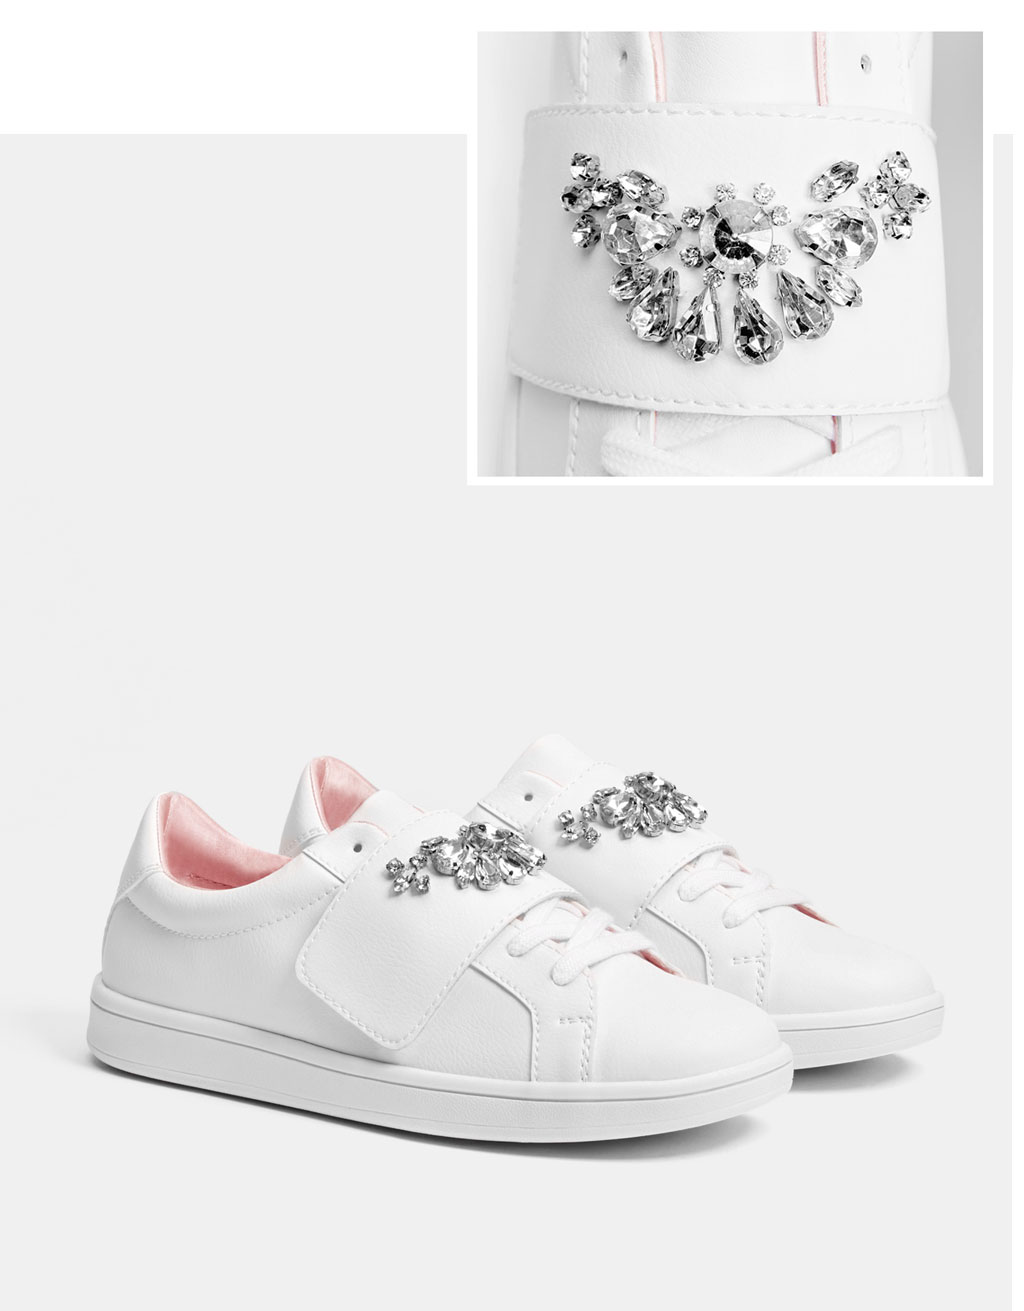 Bejewelled sneakers